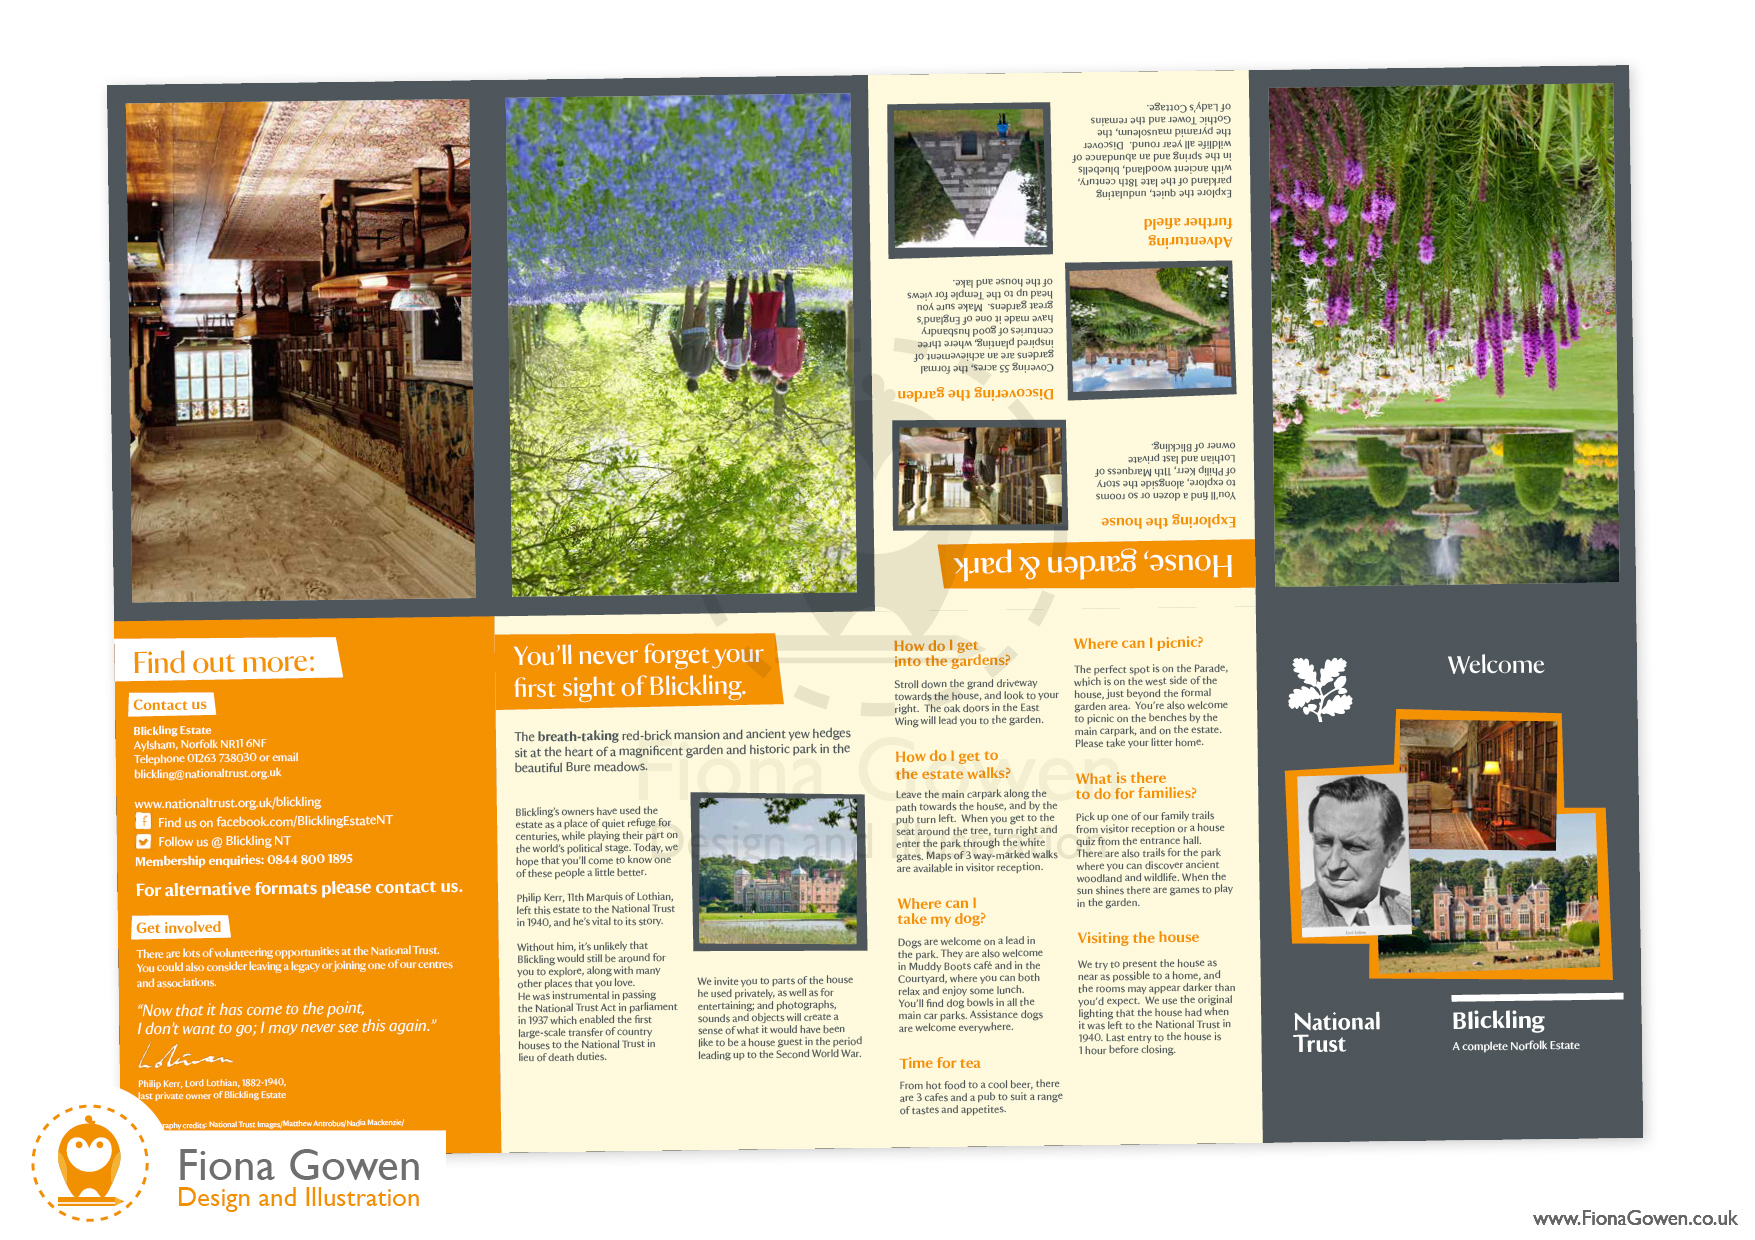 National Trust visitor leaflet for Blickling Estate, with illustrated map. Design and illustration by Fiona Gowen